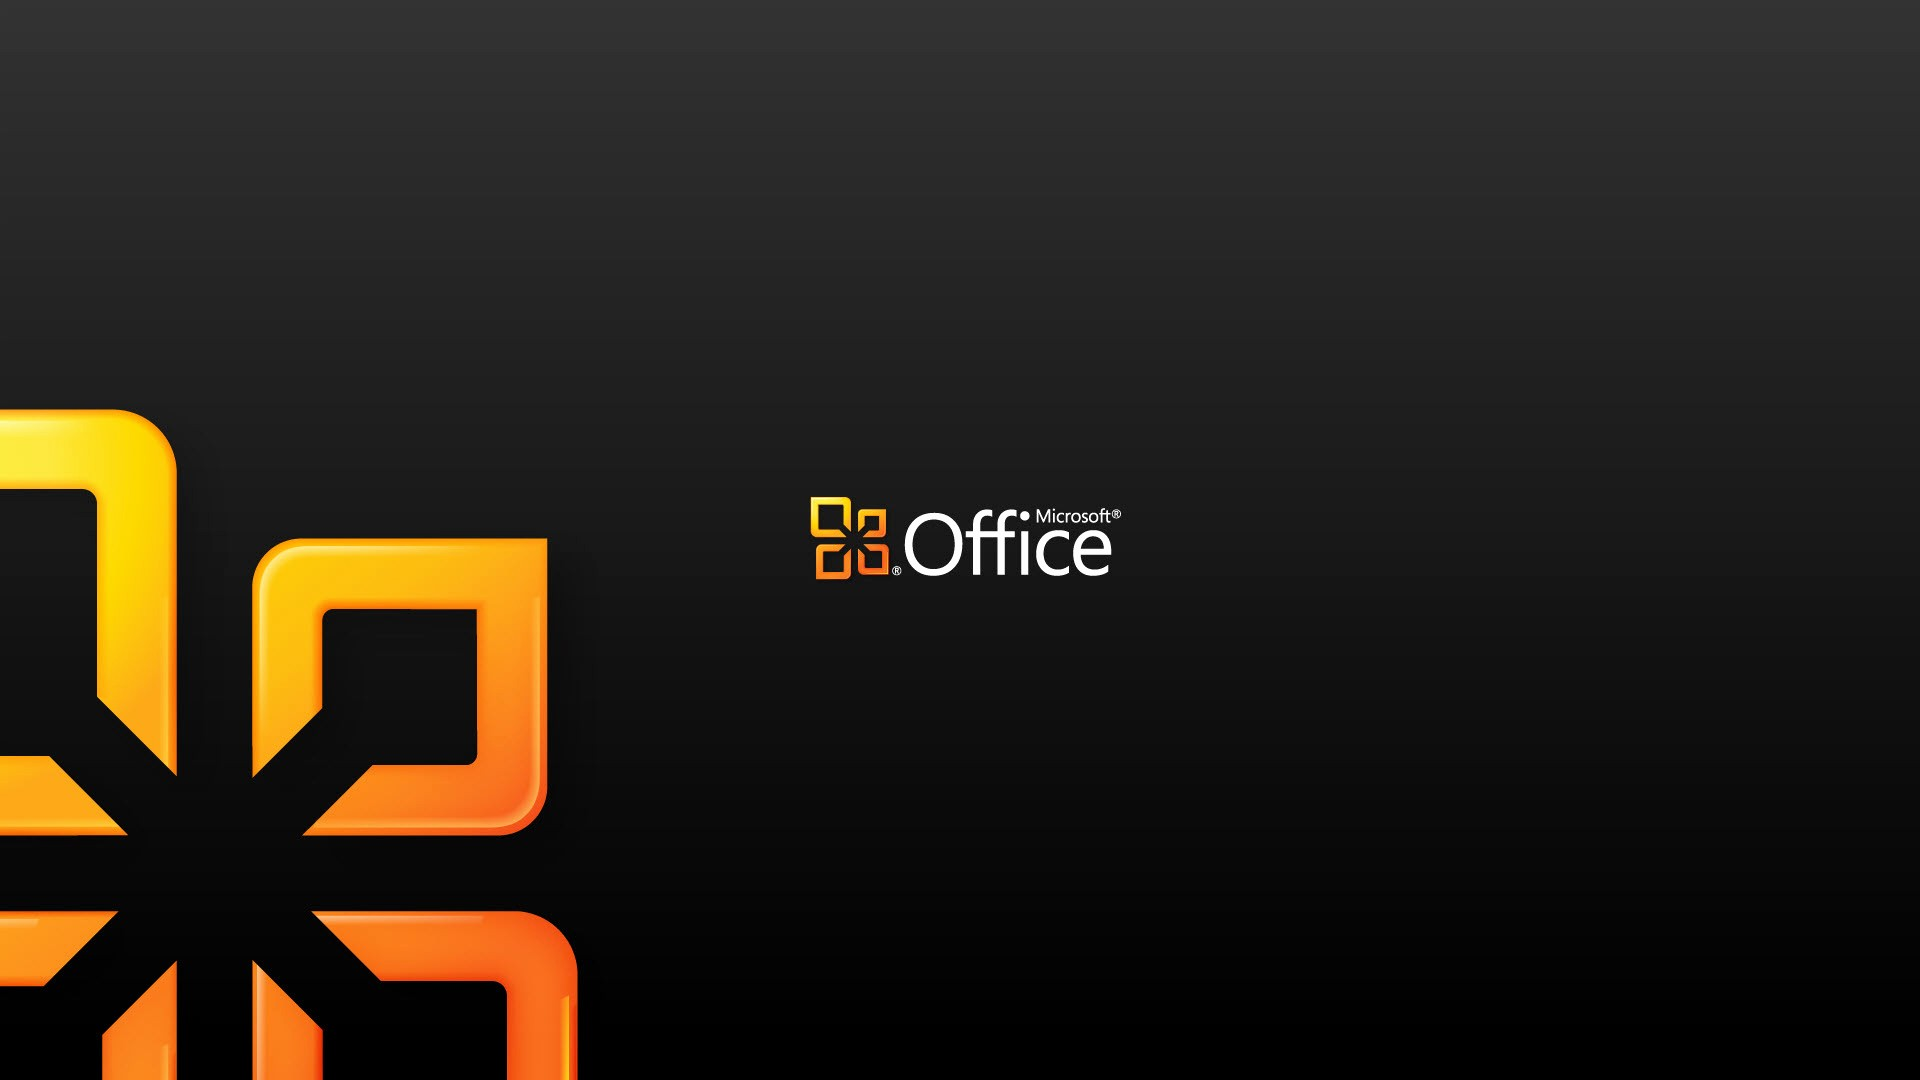 Office 2013 Background theme Download Luxury Fice Background Wallpaper Wallpapersafari